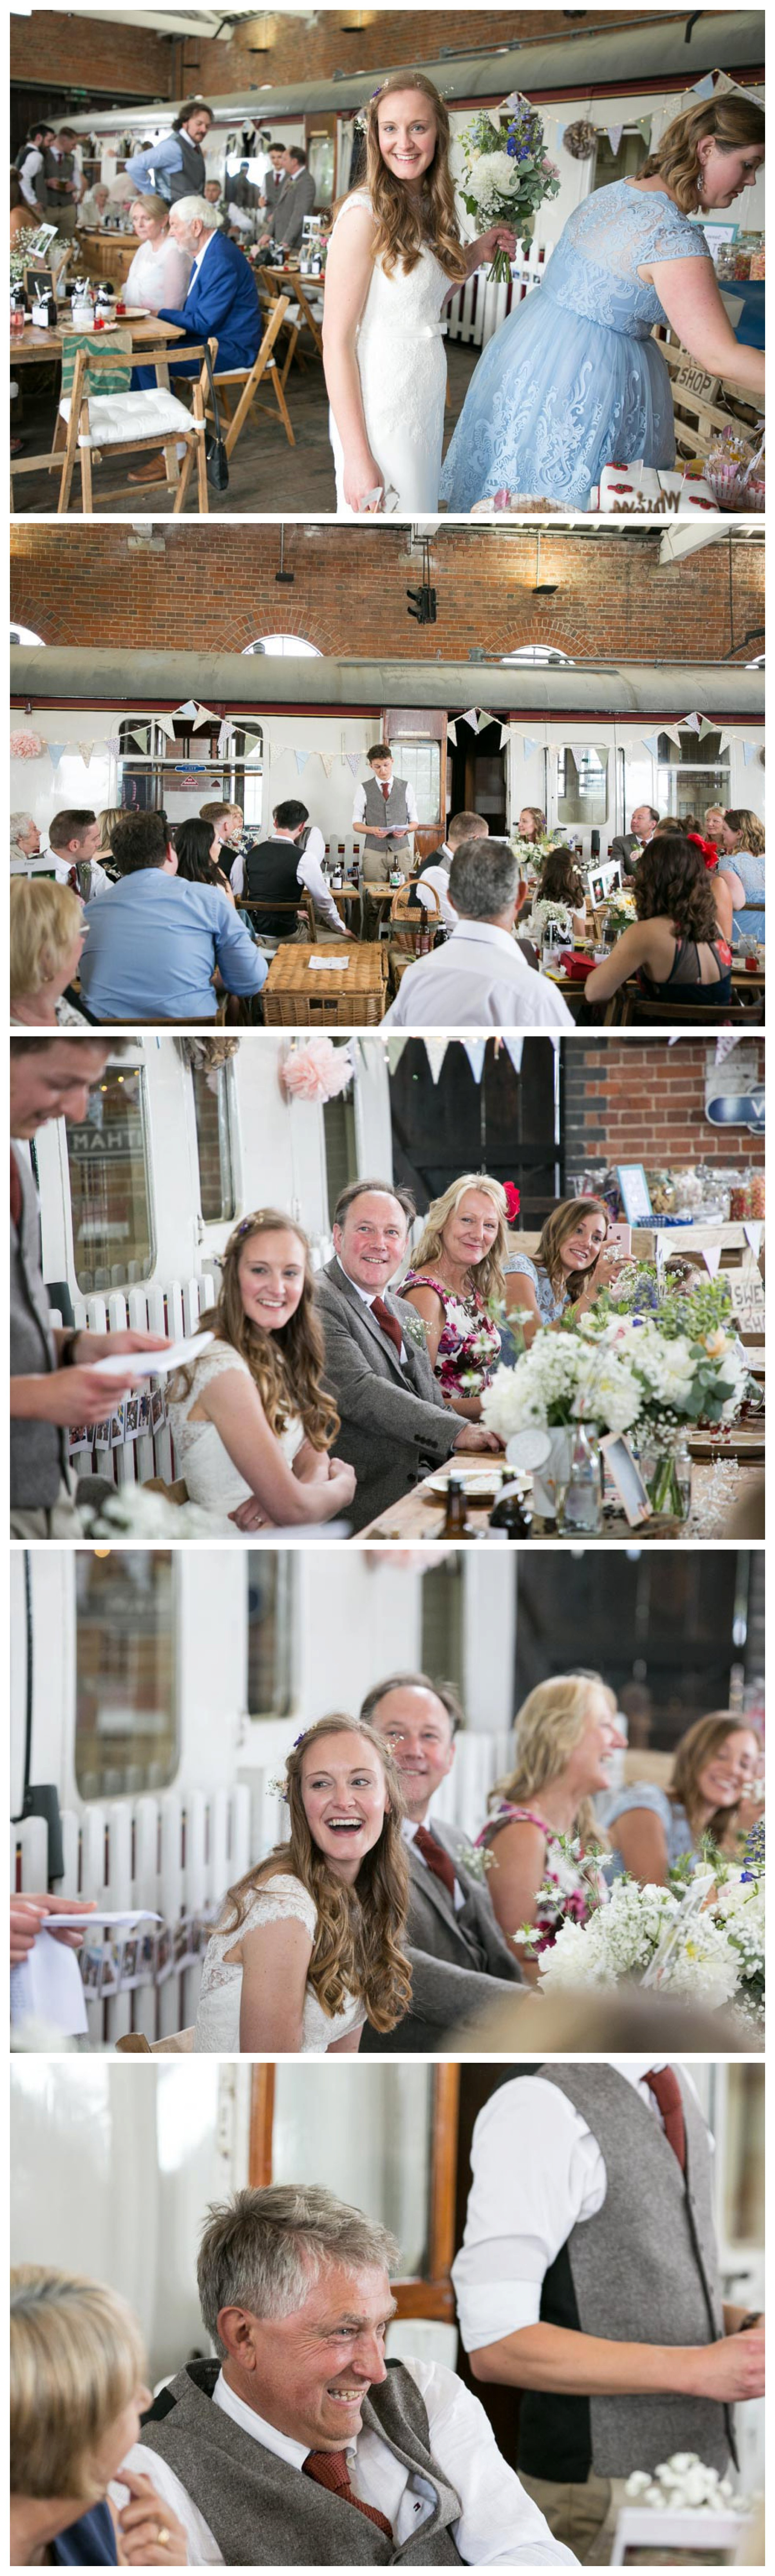 laughing bride and guests at east anglian railway wedding during speeches